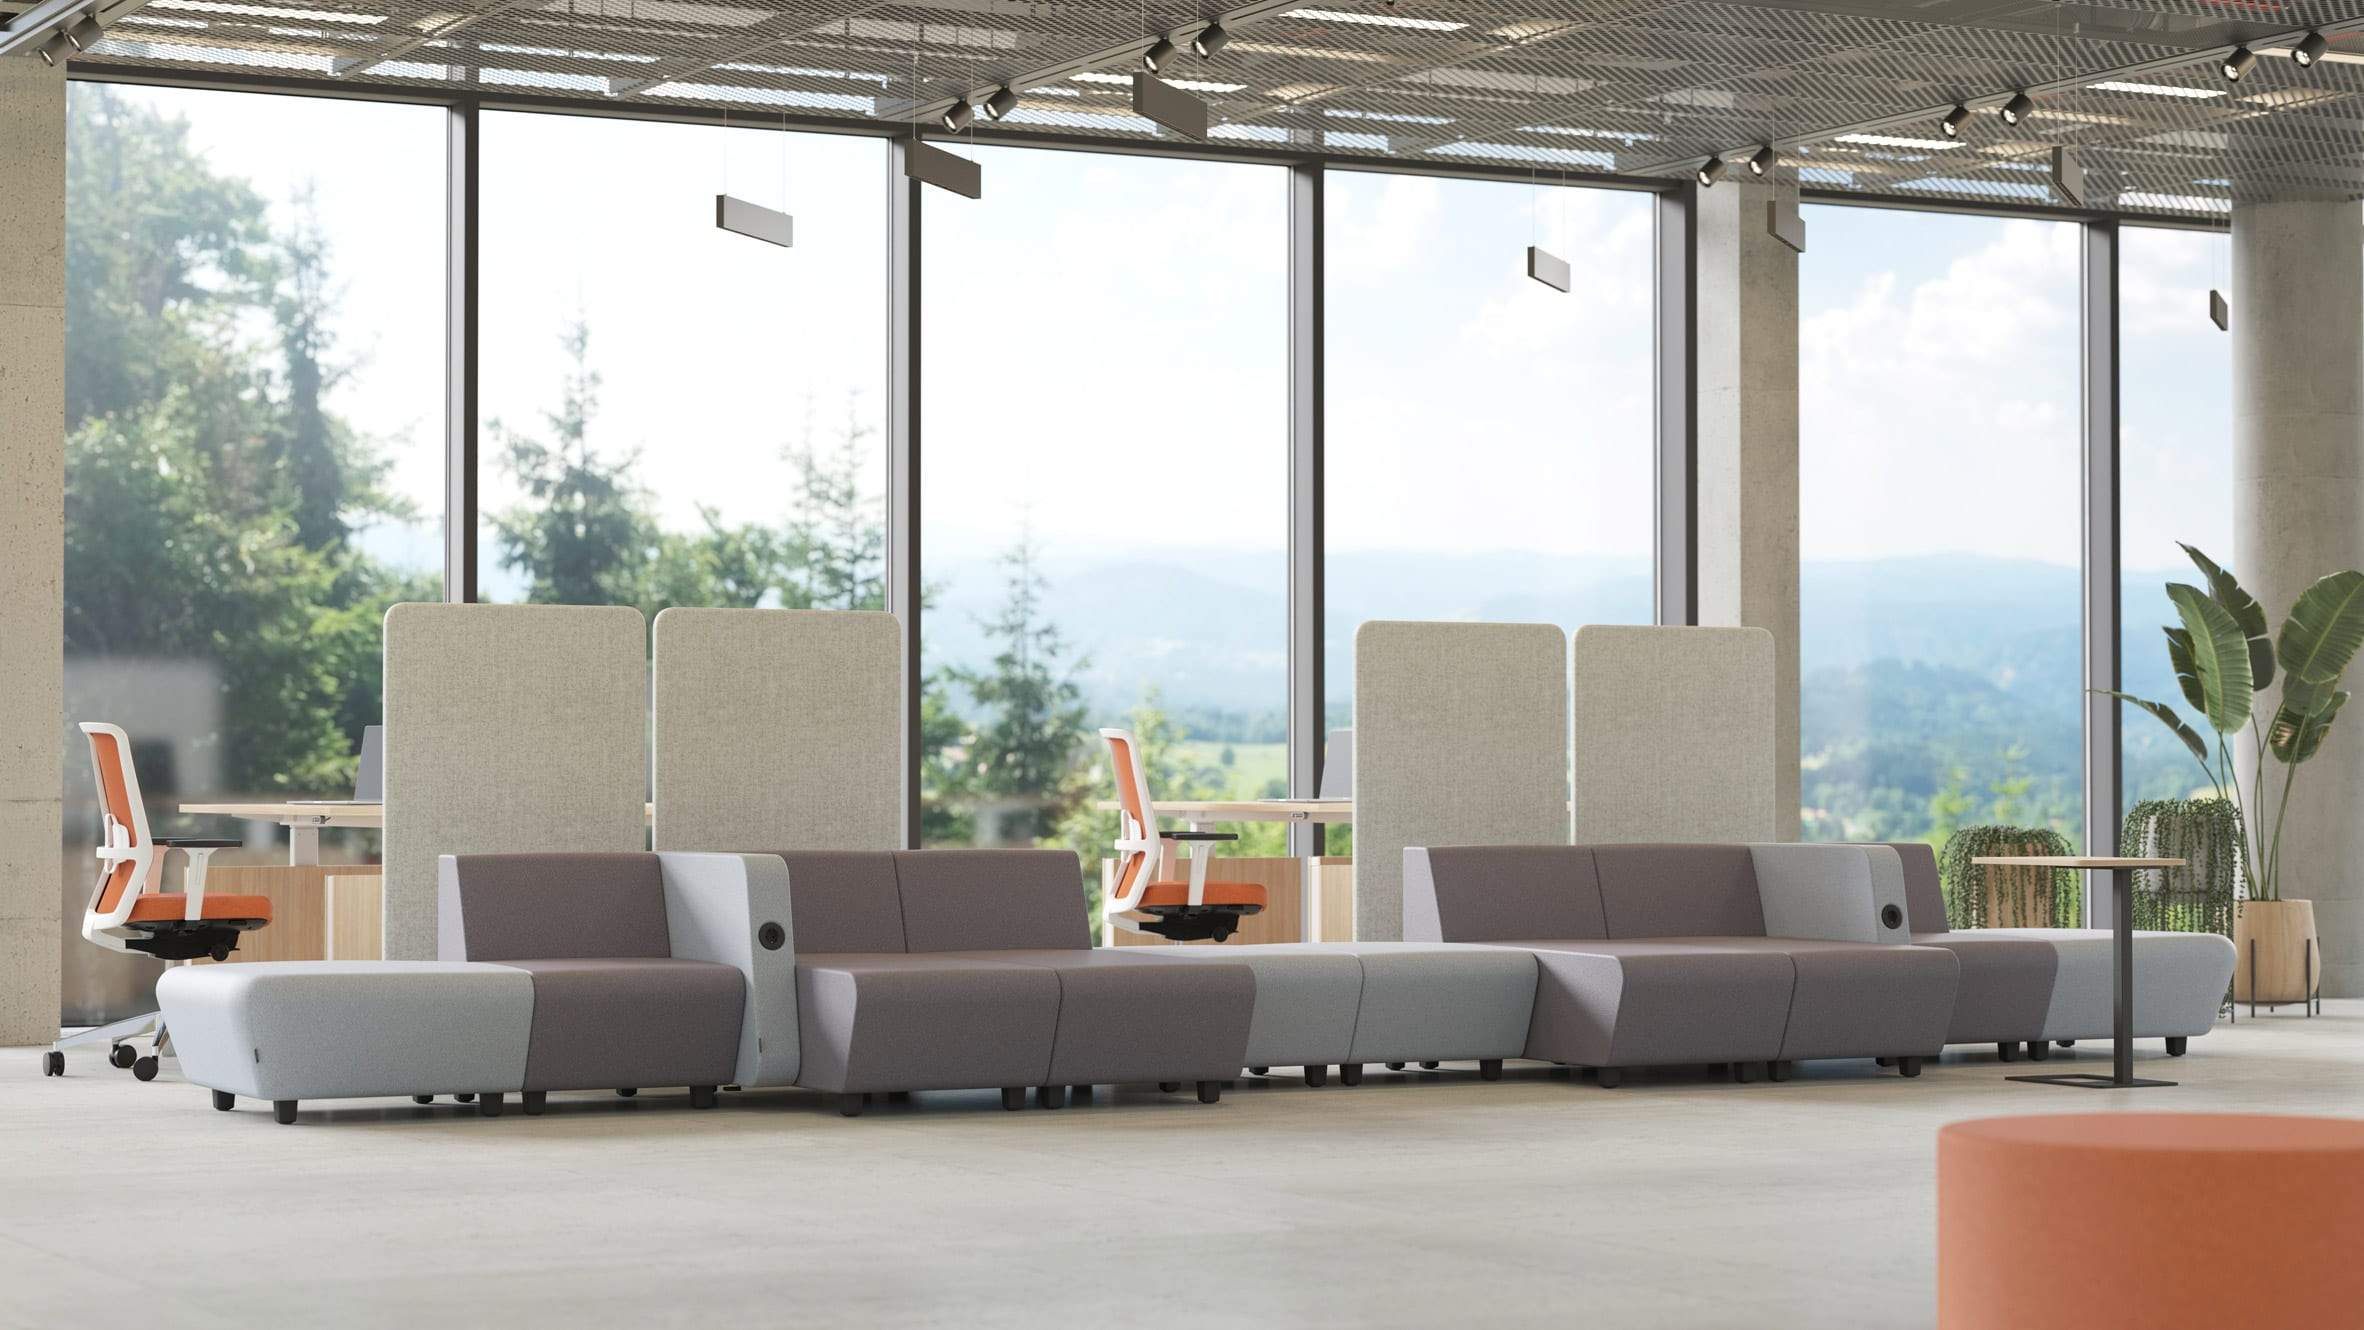 Grey modular seating situated in an office environment